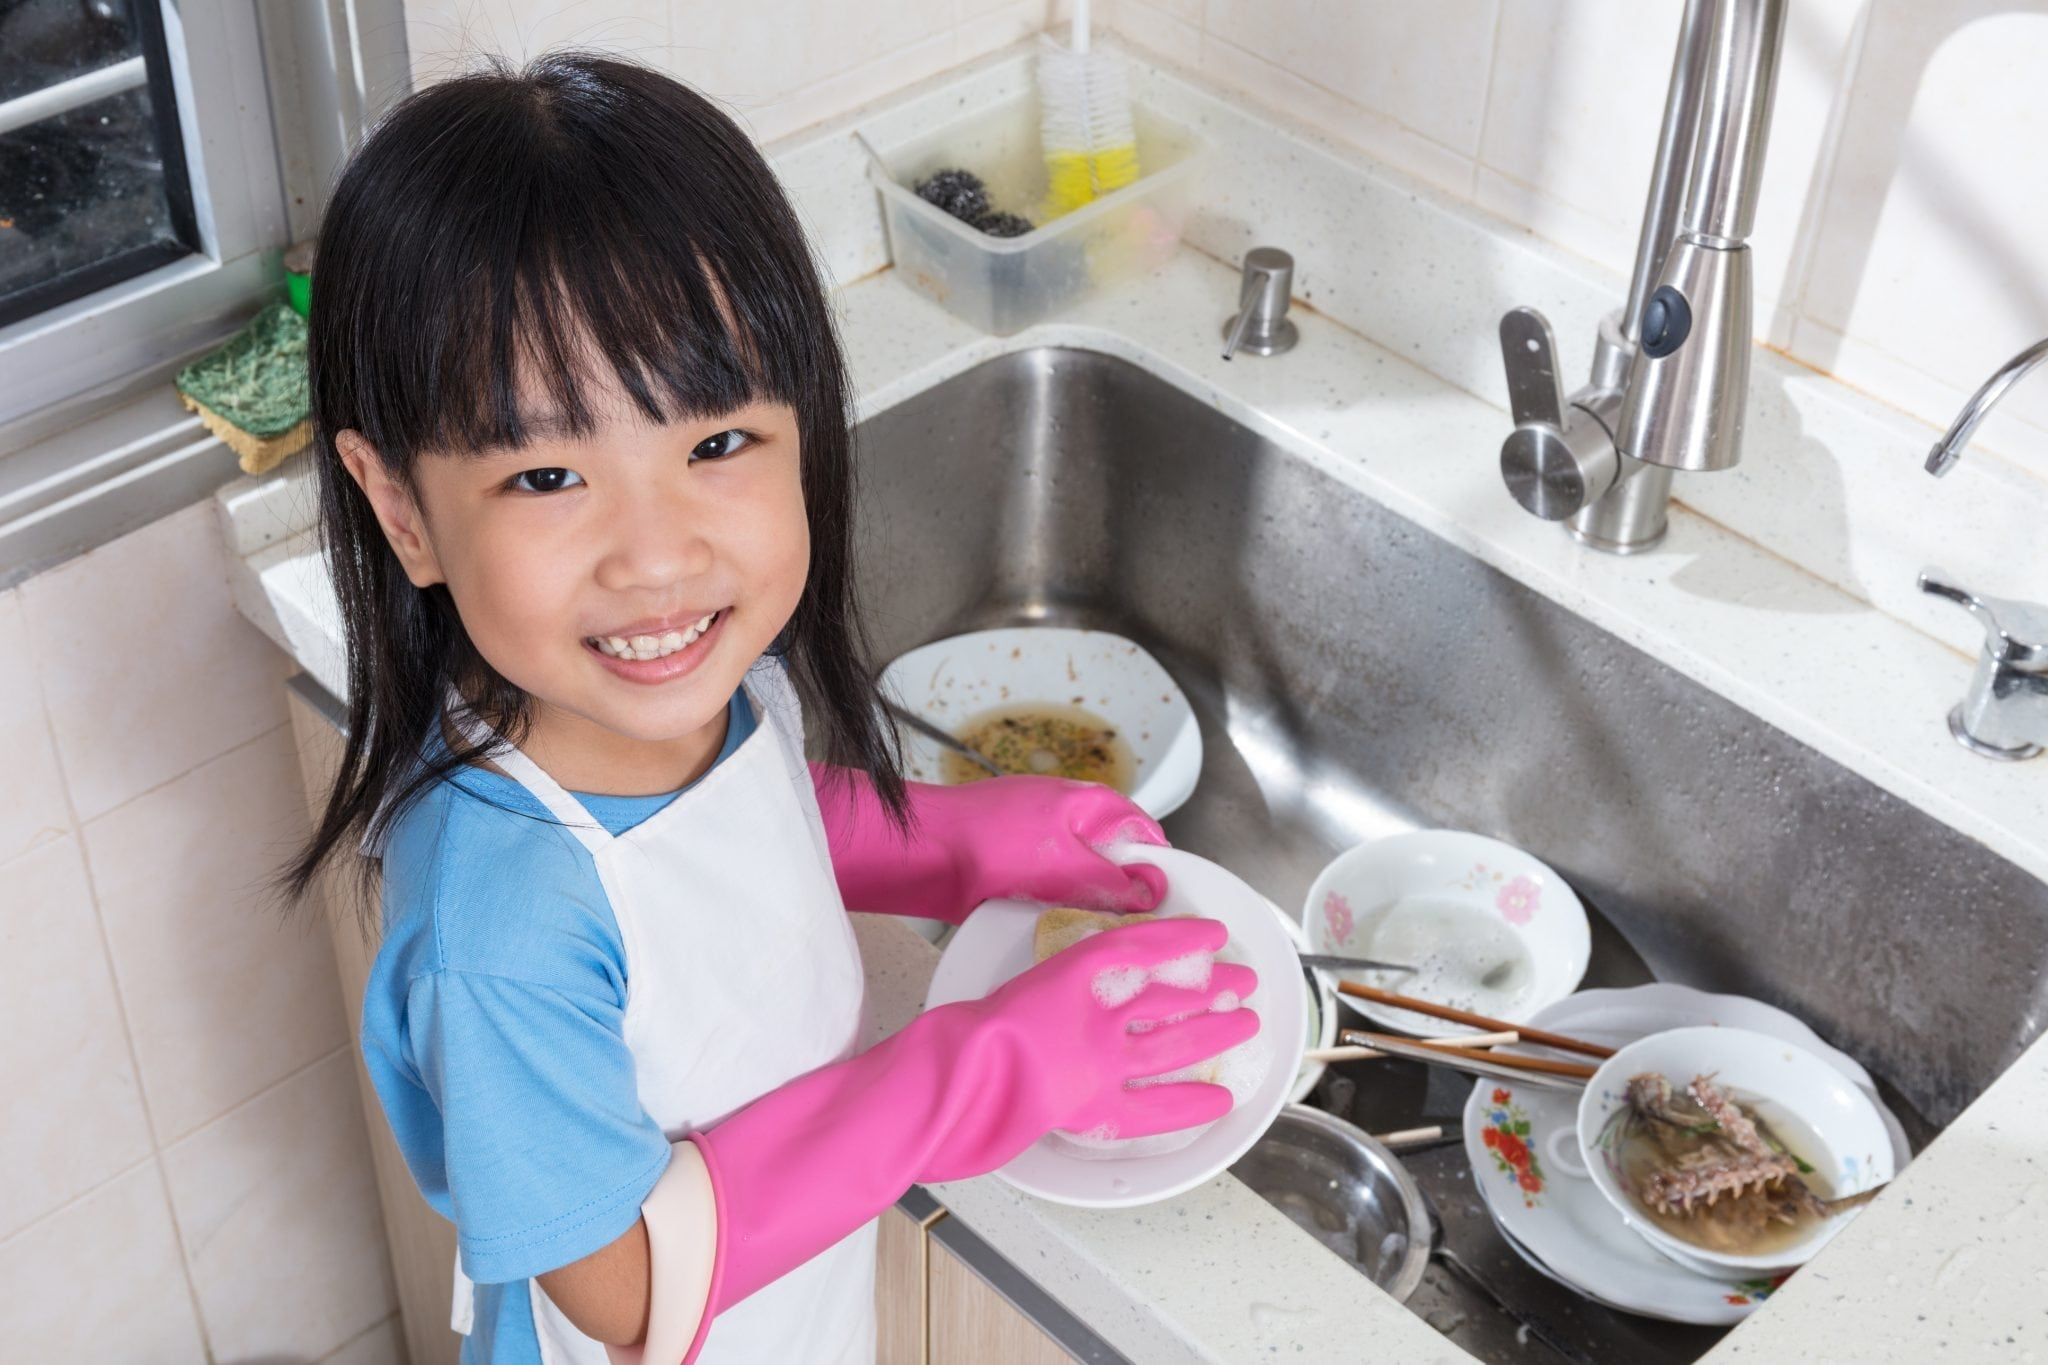 Kids and Chores: How to Get Them to Pitch In?